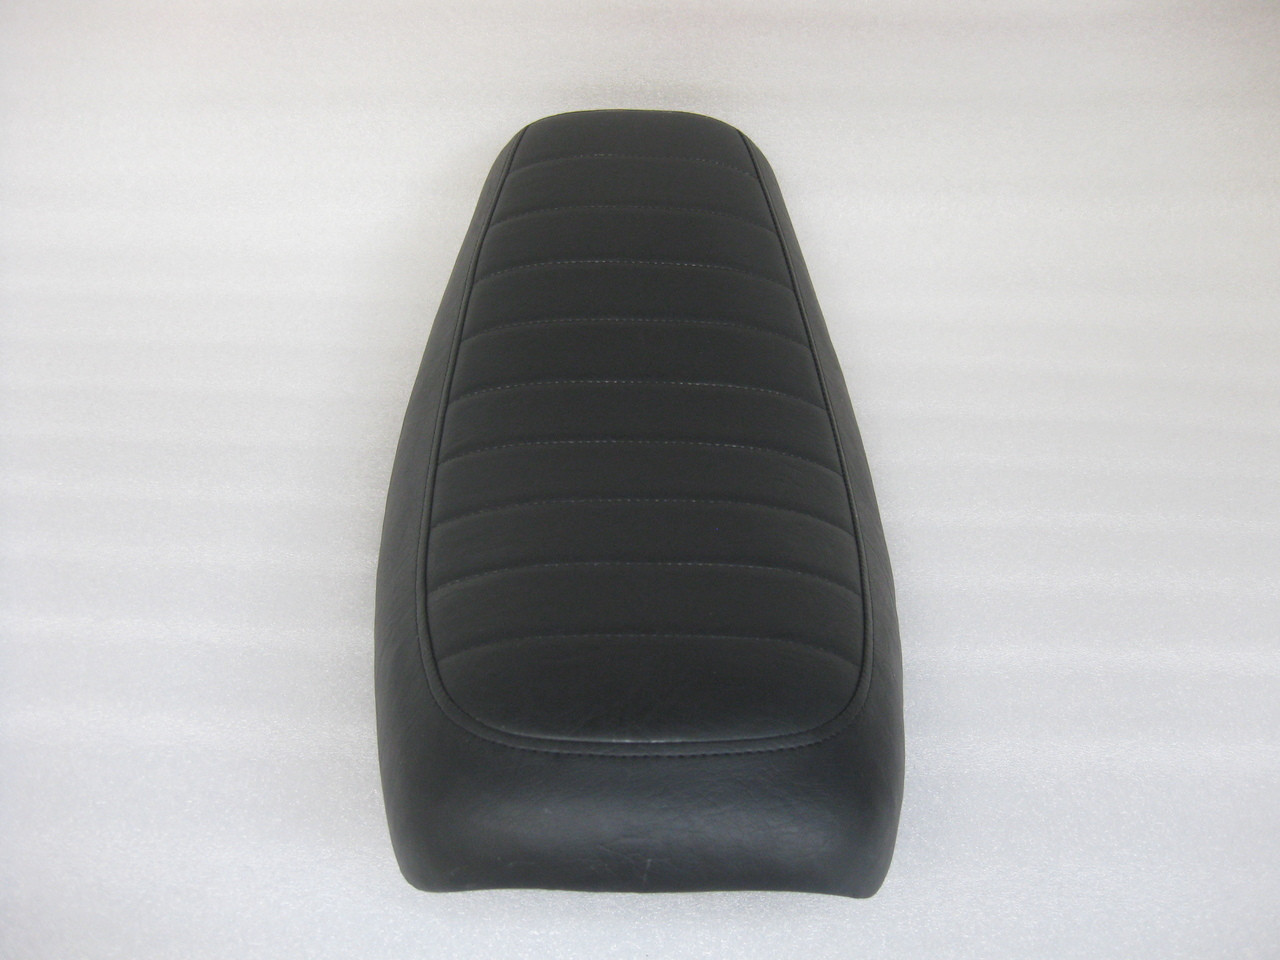 Honda CB350T CL350 CB350F Banana Style Cafe Racer Motorcycle Seat with Metal Pan #4160